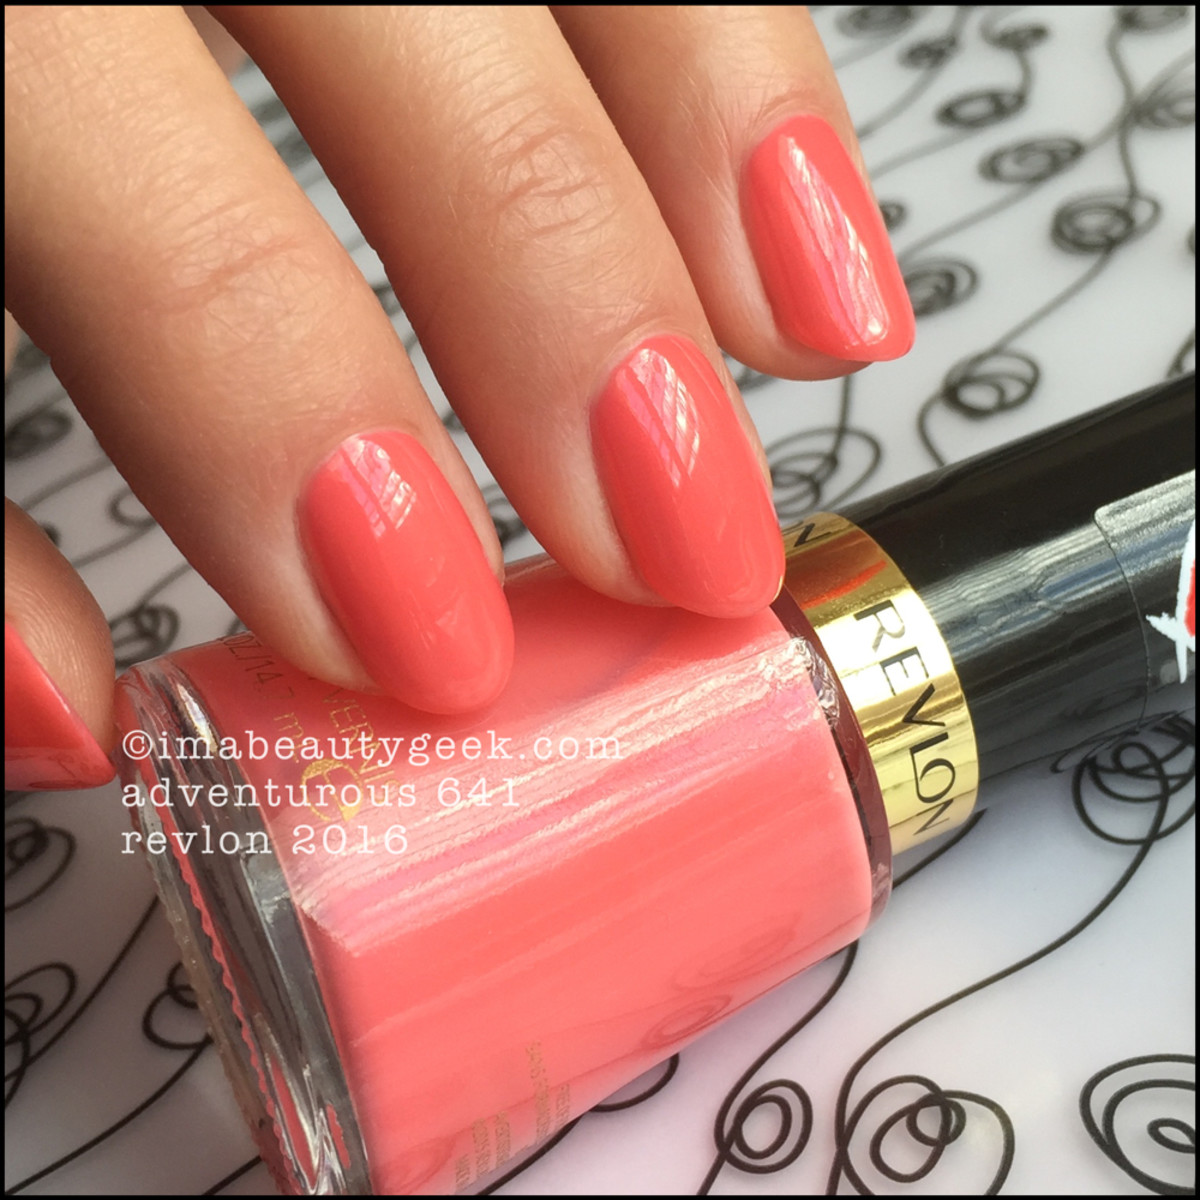 Revlon 2016 nail polish swatches and review beautygeeks revlon nail polish 2016revlon adventurous 641 nail enamel nvjuhfo Image collections